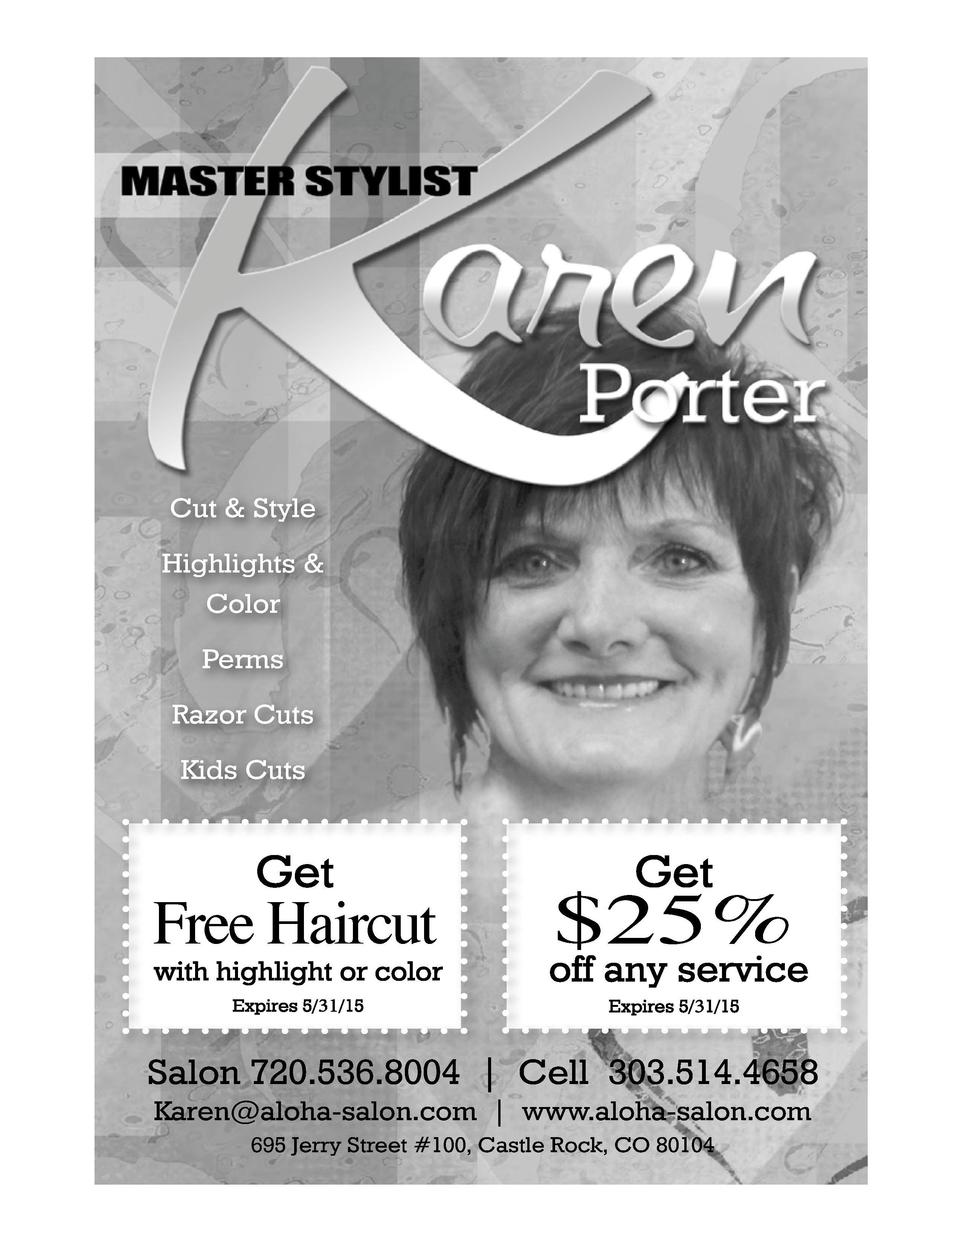 Cut   Style Cut   Style Highlights Highlights     Color Color Perms  Perms  Razor CutsRazor Cuts Kids Cuts Kids Cuts  Get ...